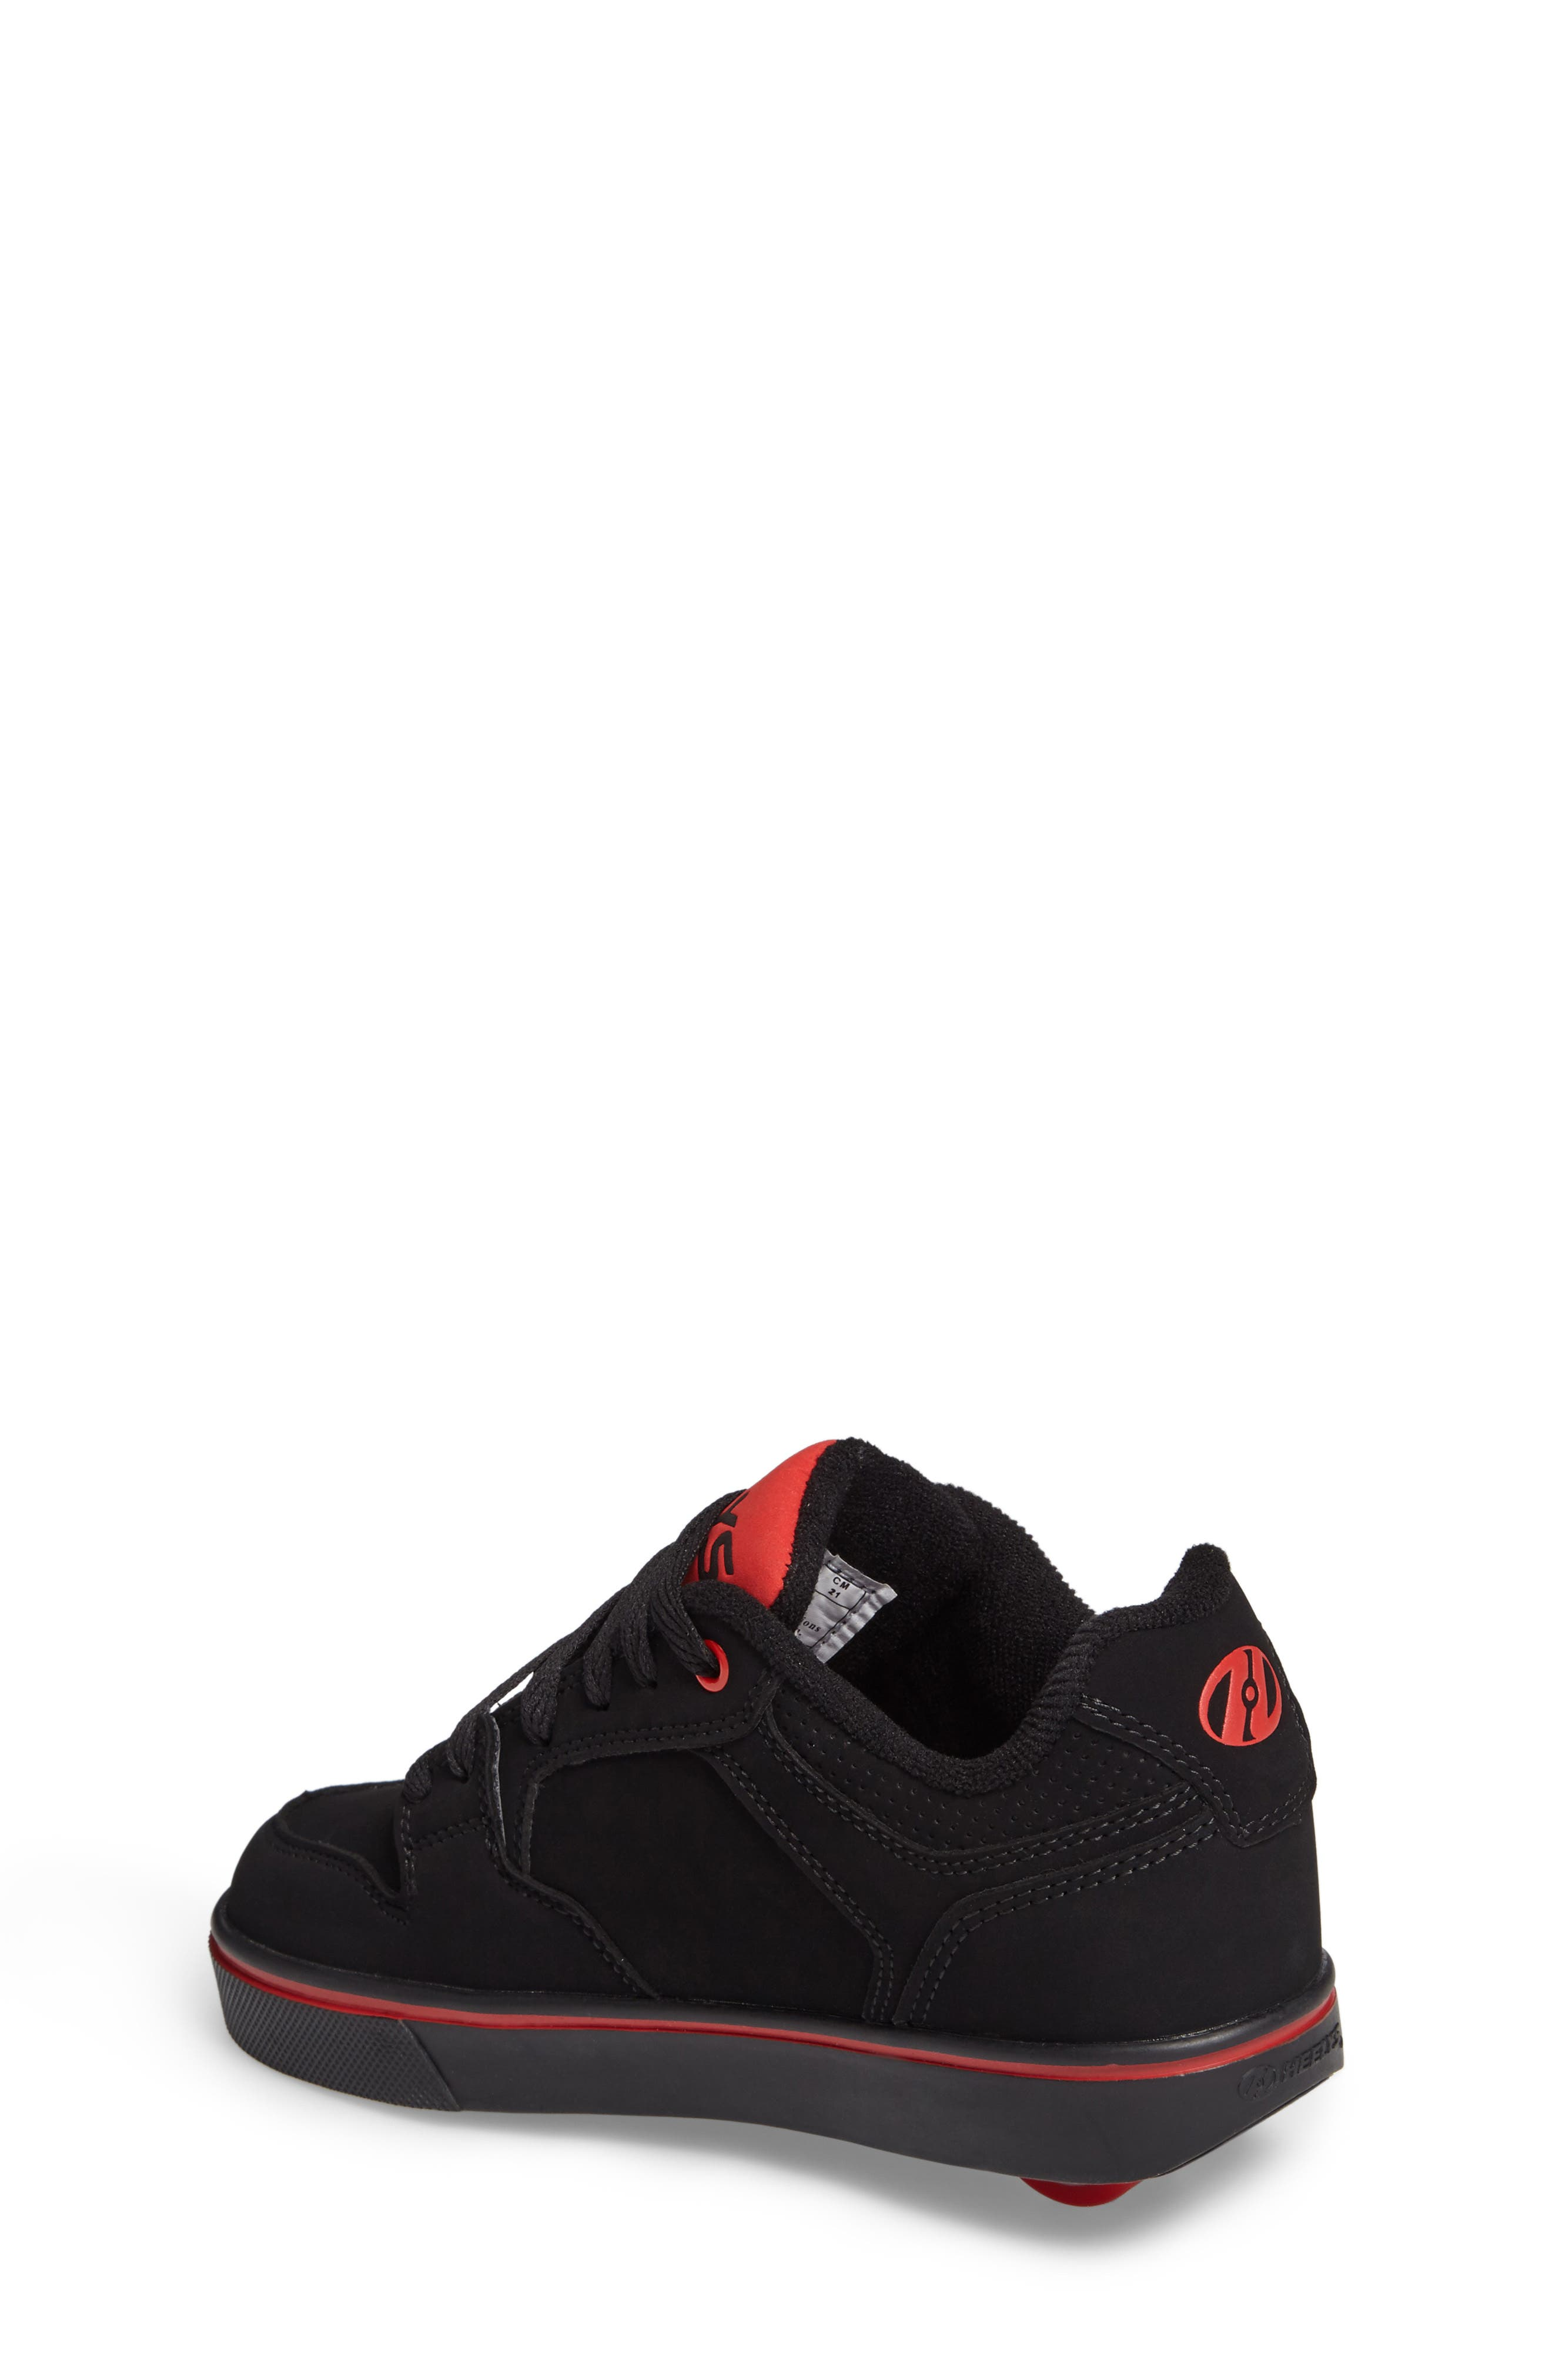 Alternate Image 2  - Heelys Motion Plus Sneaker (Little Kid & Big Kid)